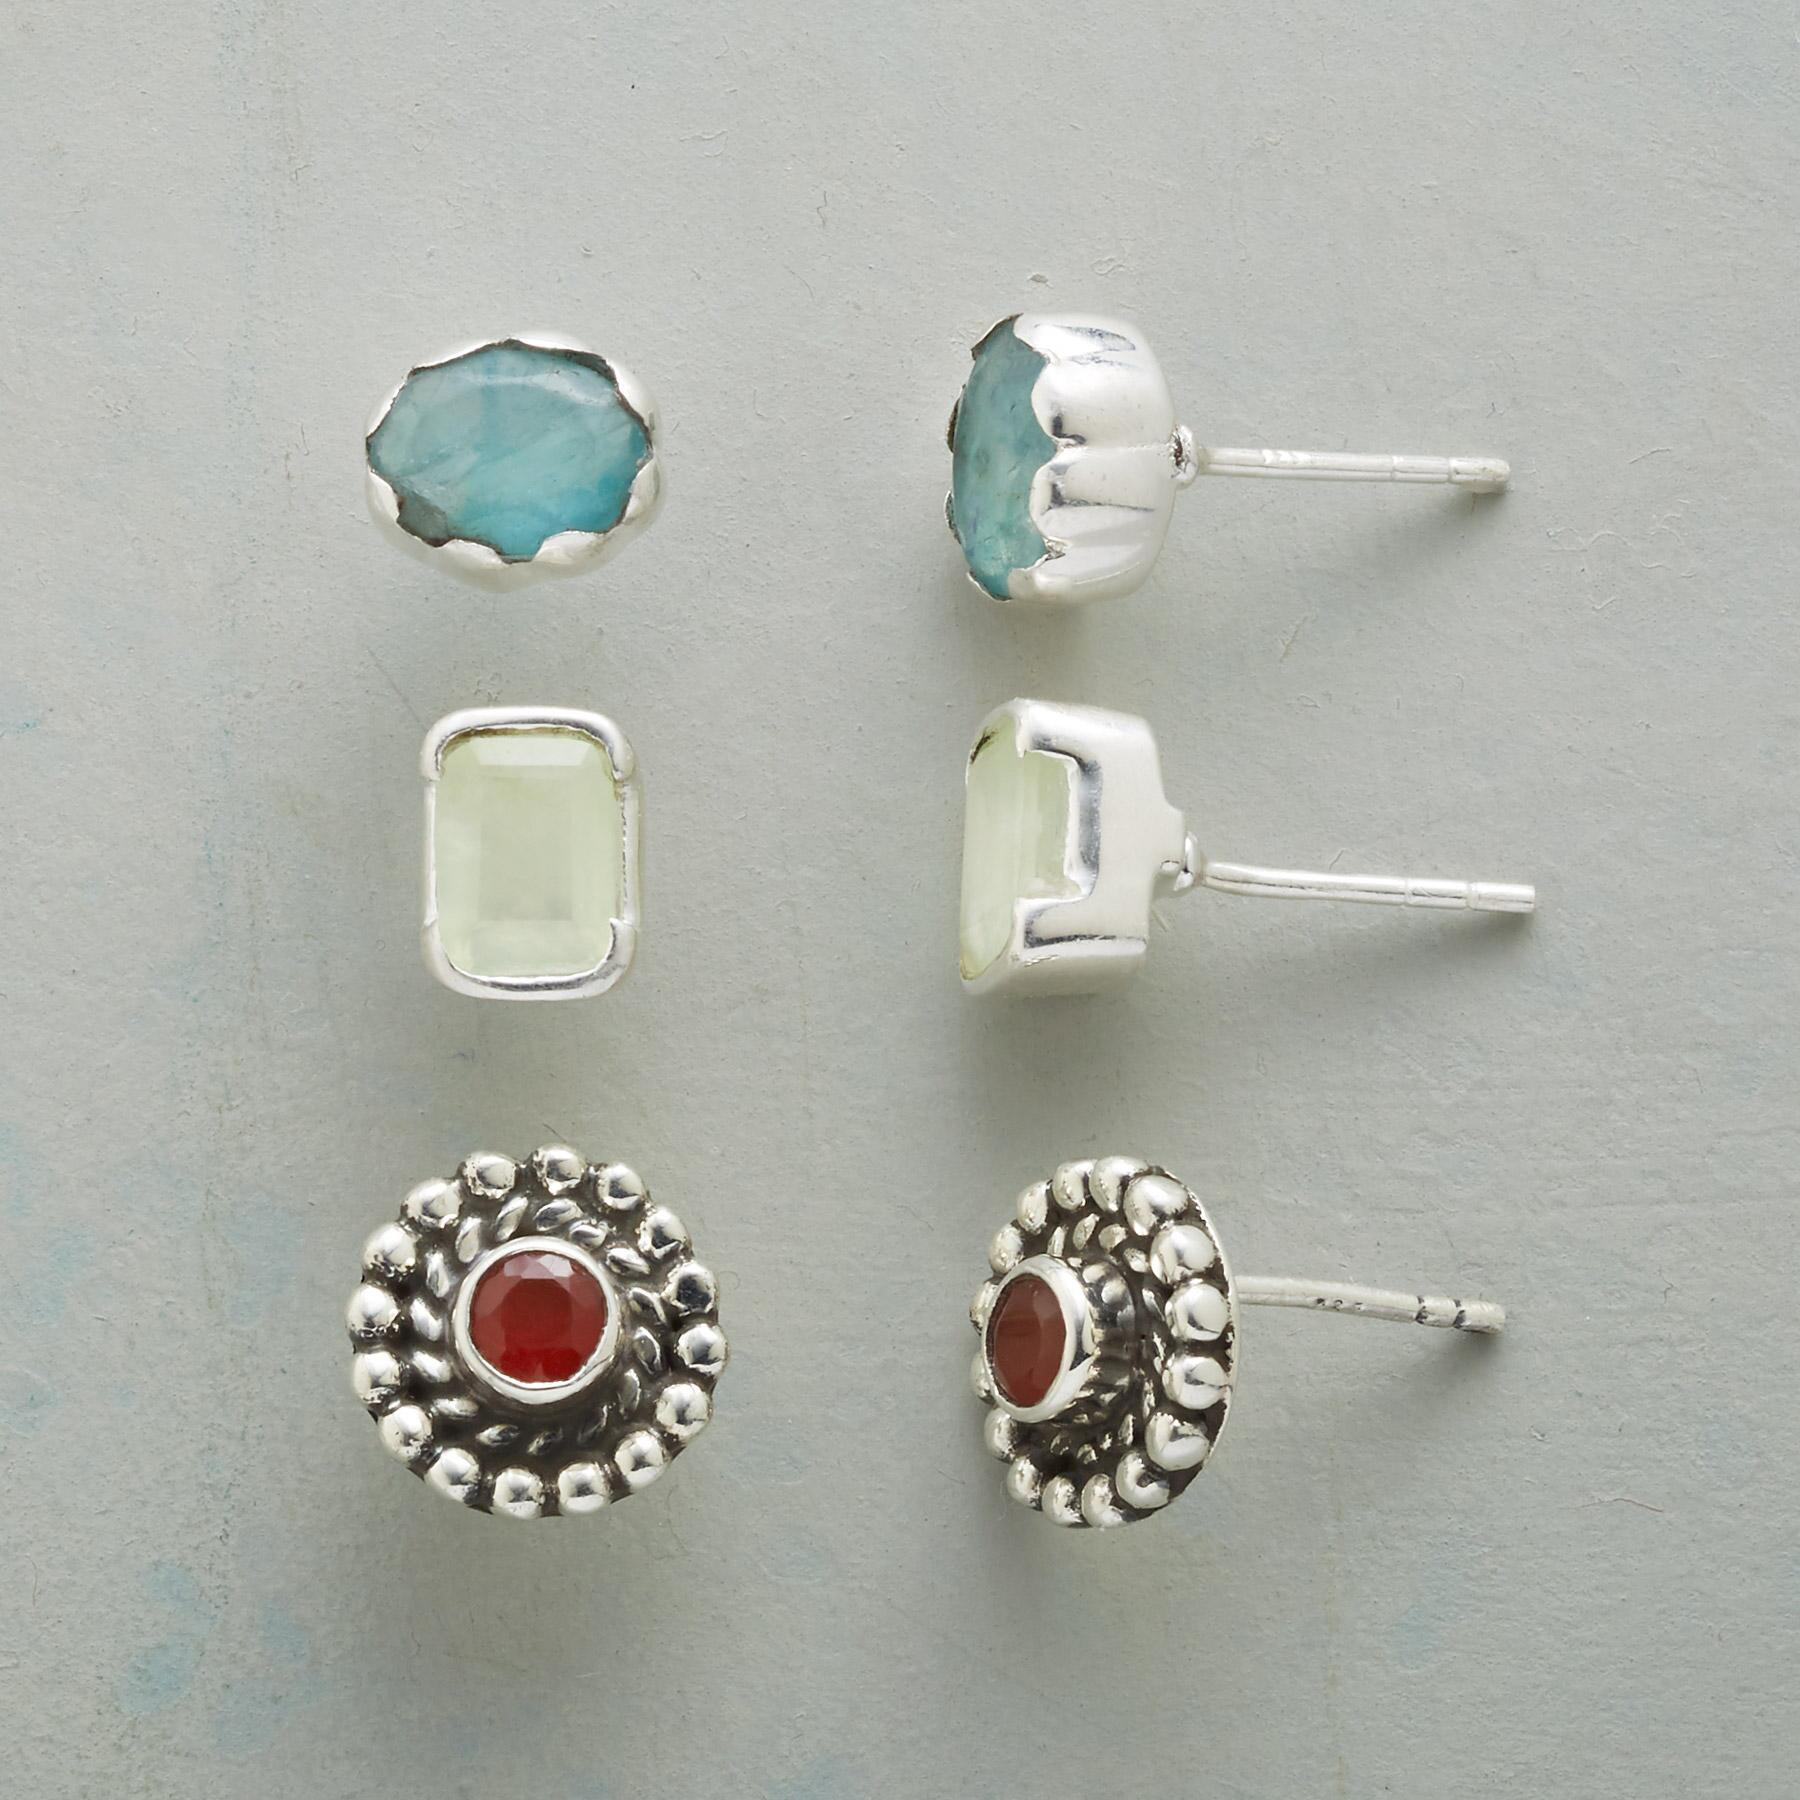 ARTFUL OPTIONS EARRING TRIO: View 1